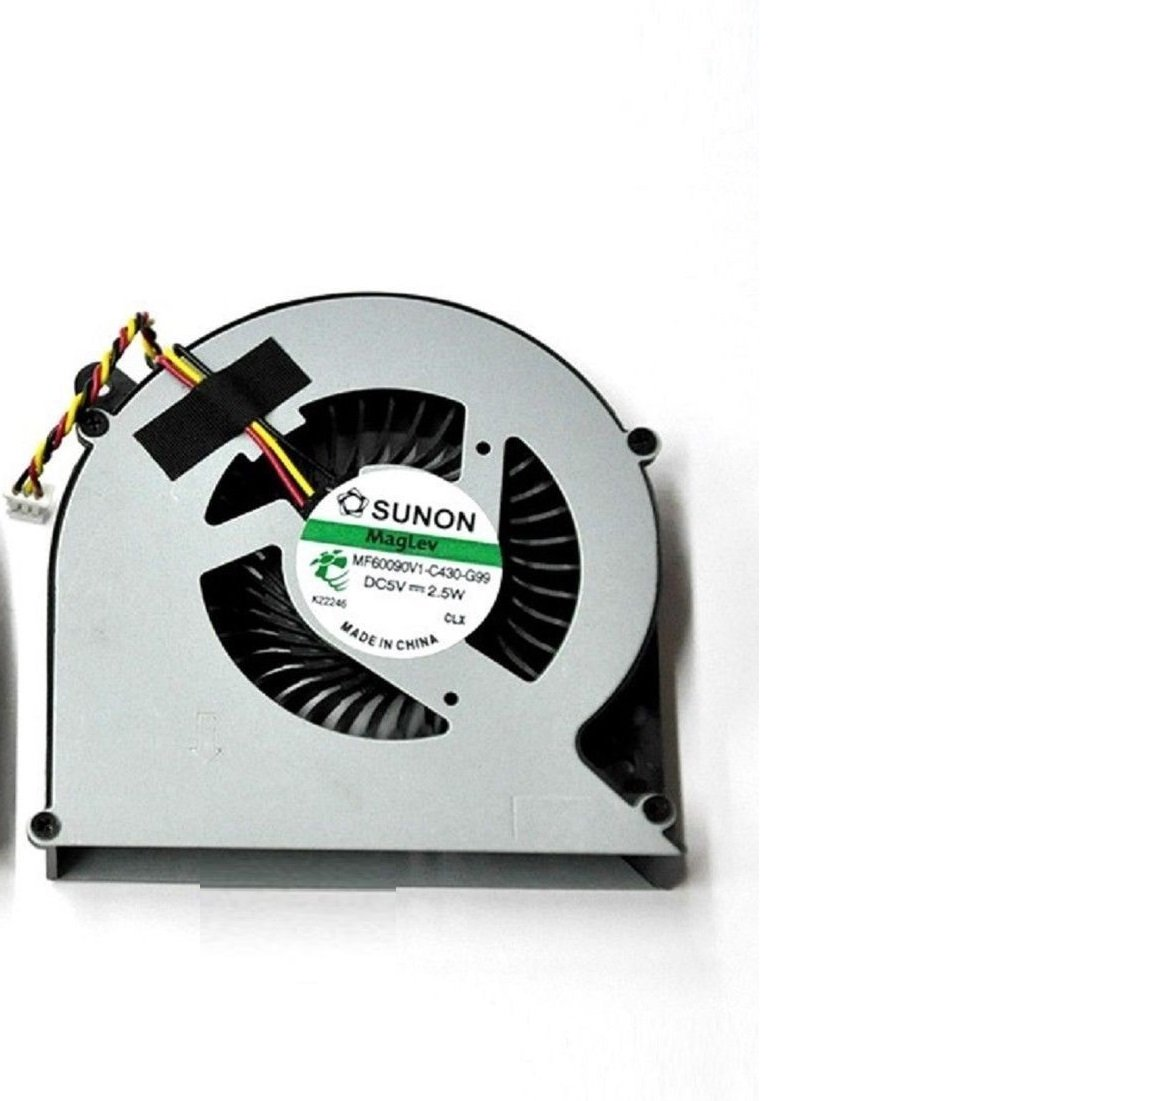 For Toshiba Satellite C855-1W4 CPU Fan